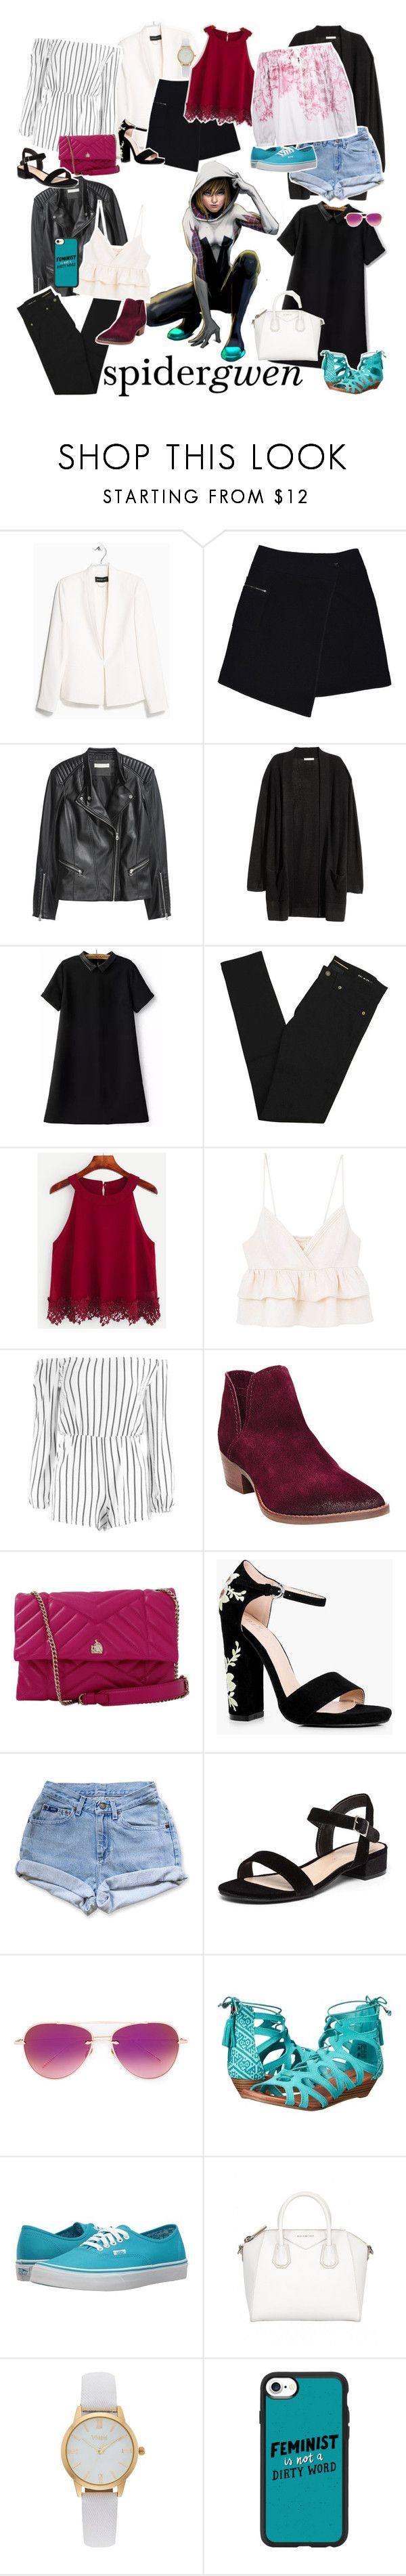 """☾✧ spiderman series 